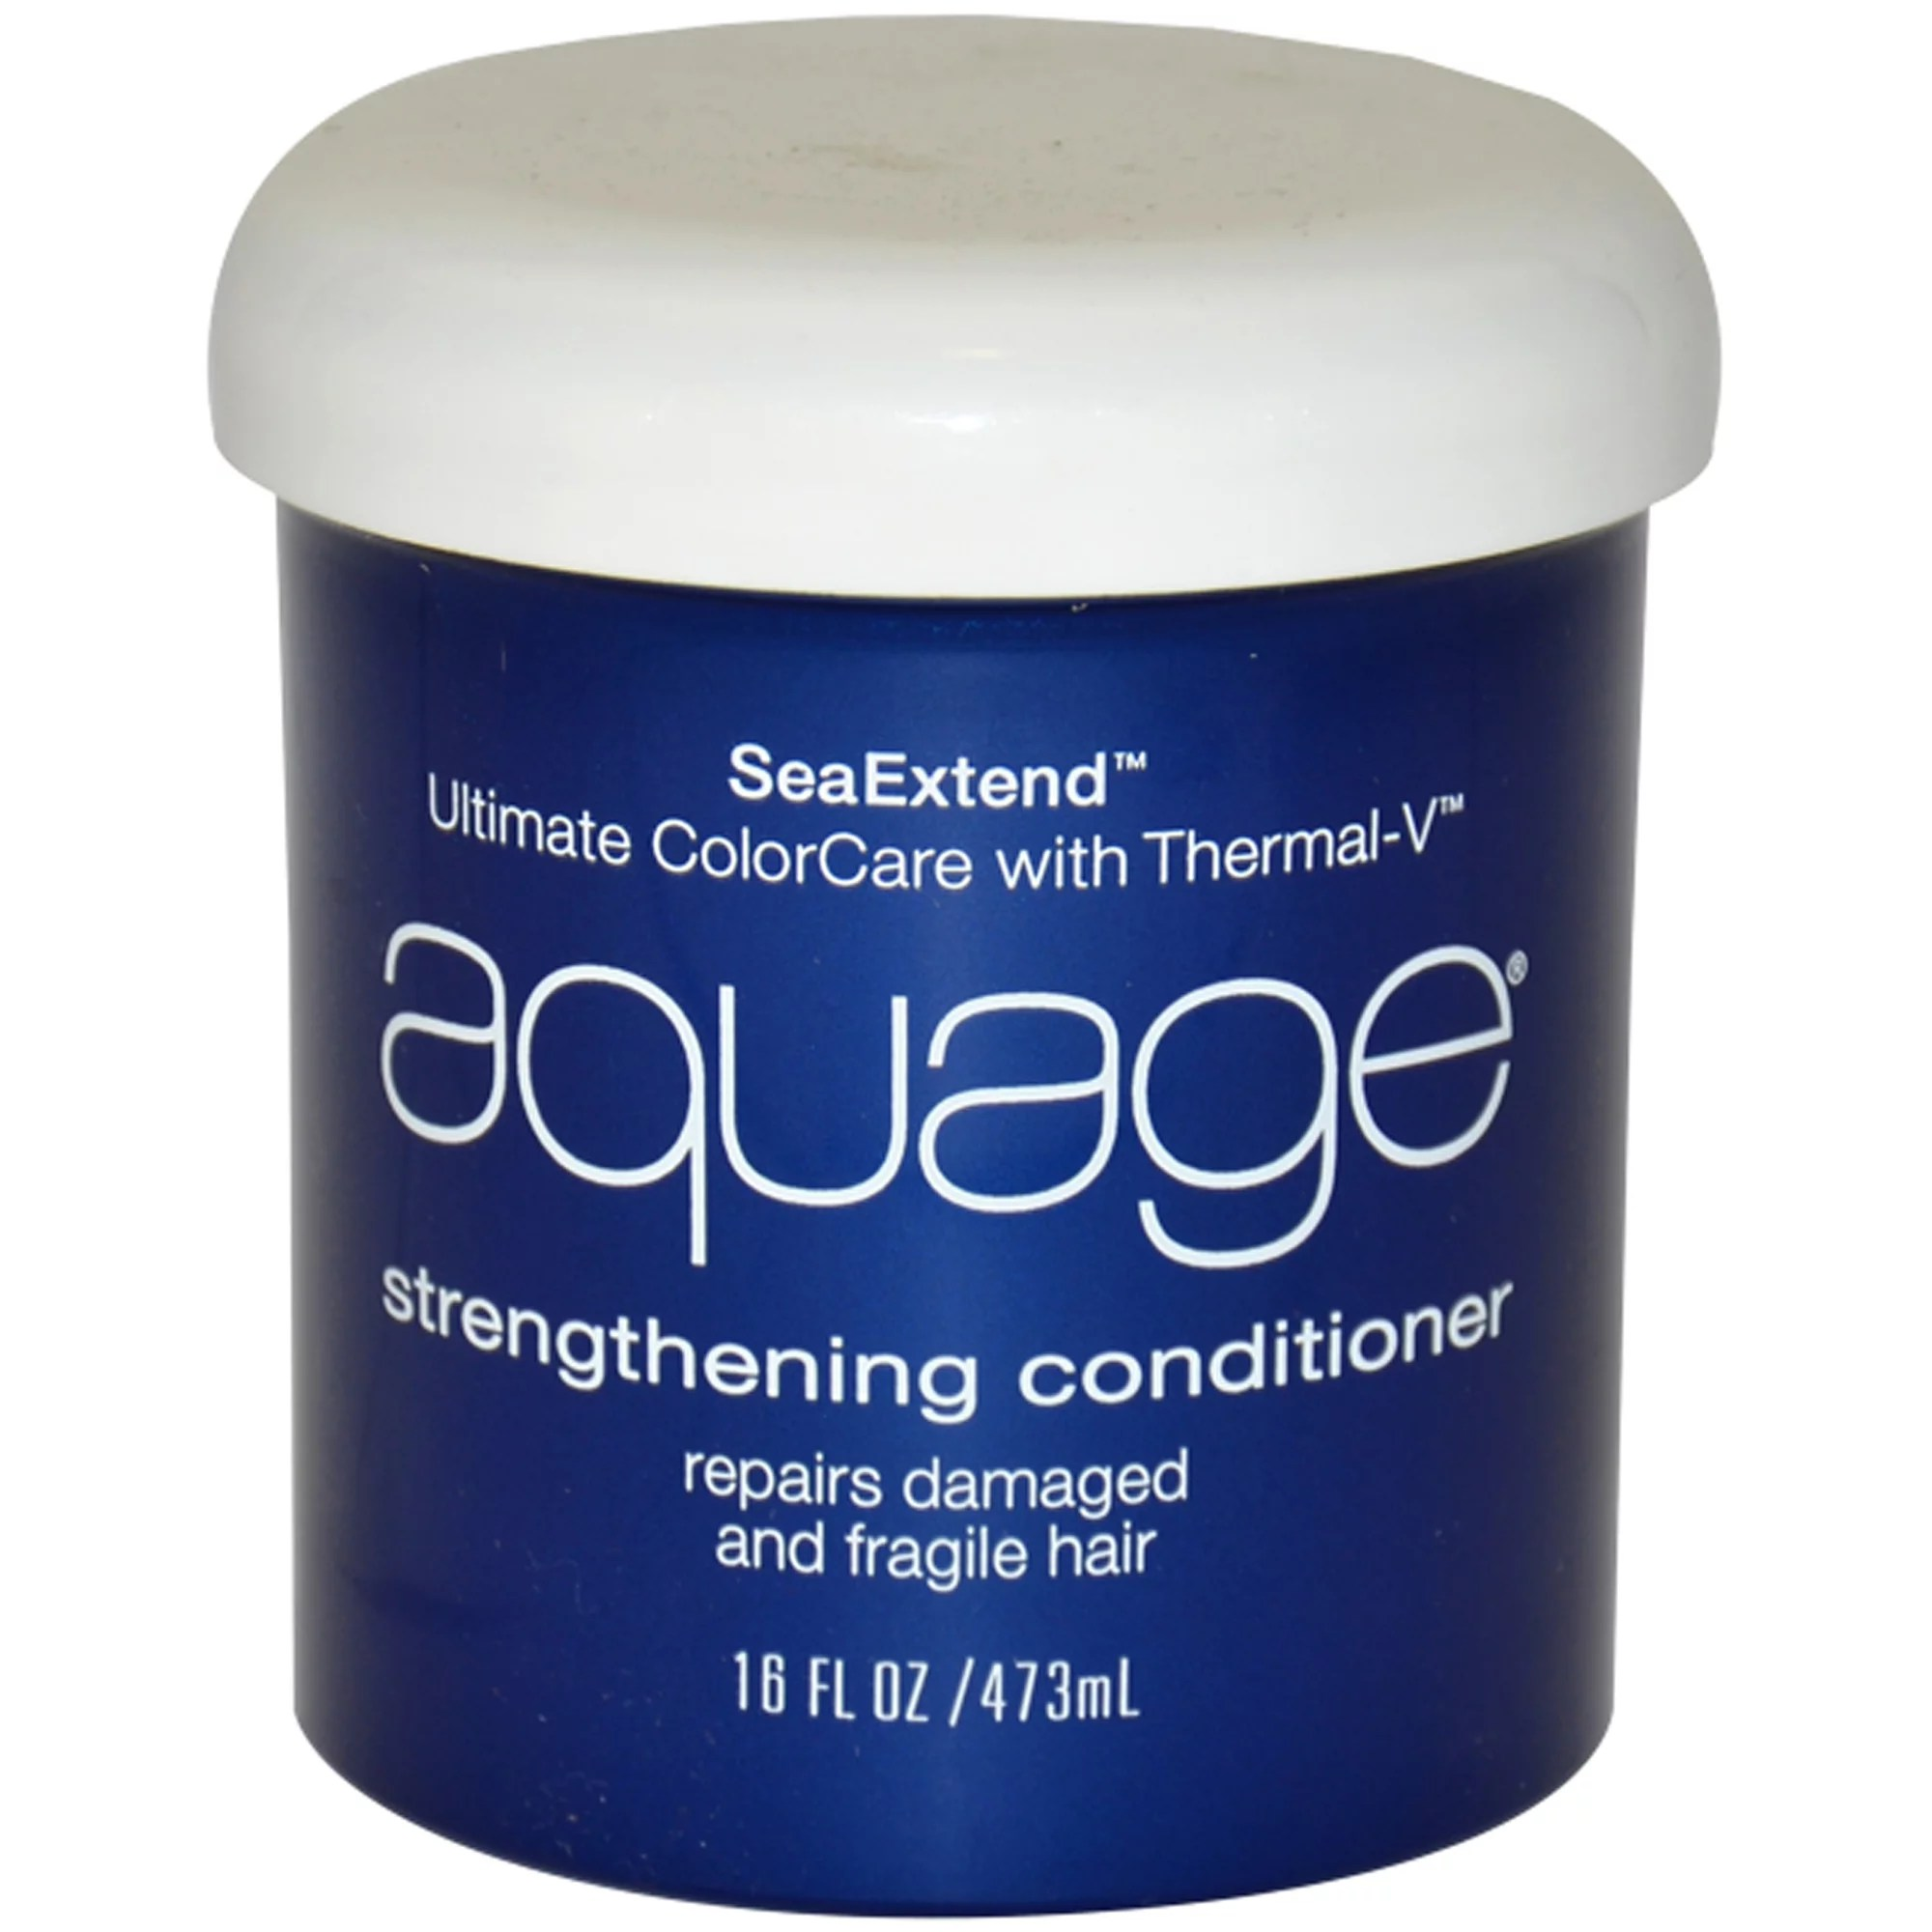 Aquage Seaextend Ultimate Colorcare with Thermal-V Strengthening Conditioner